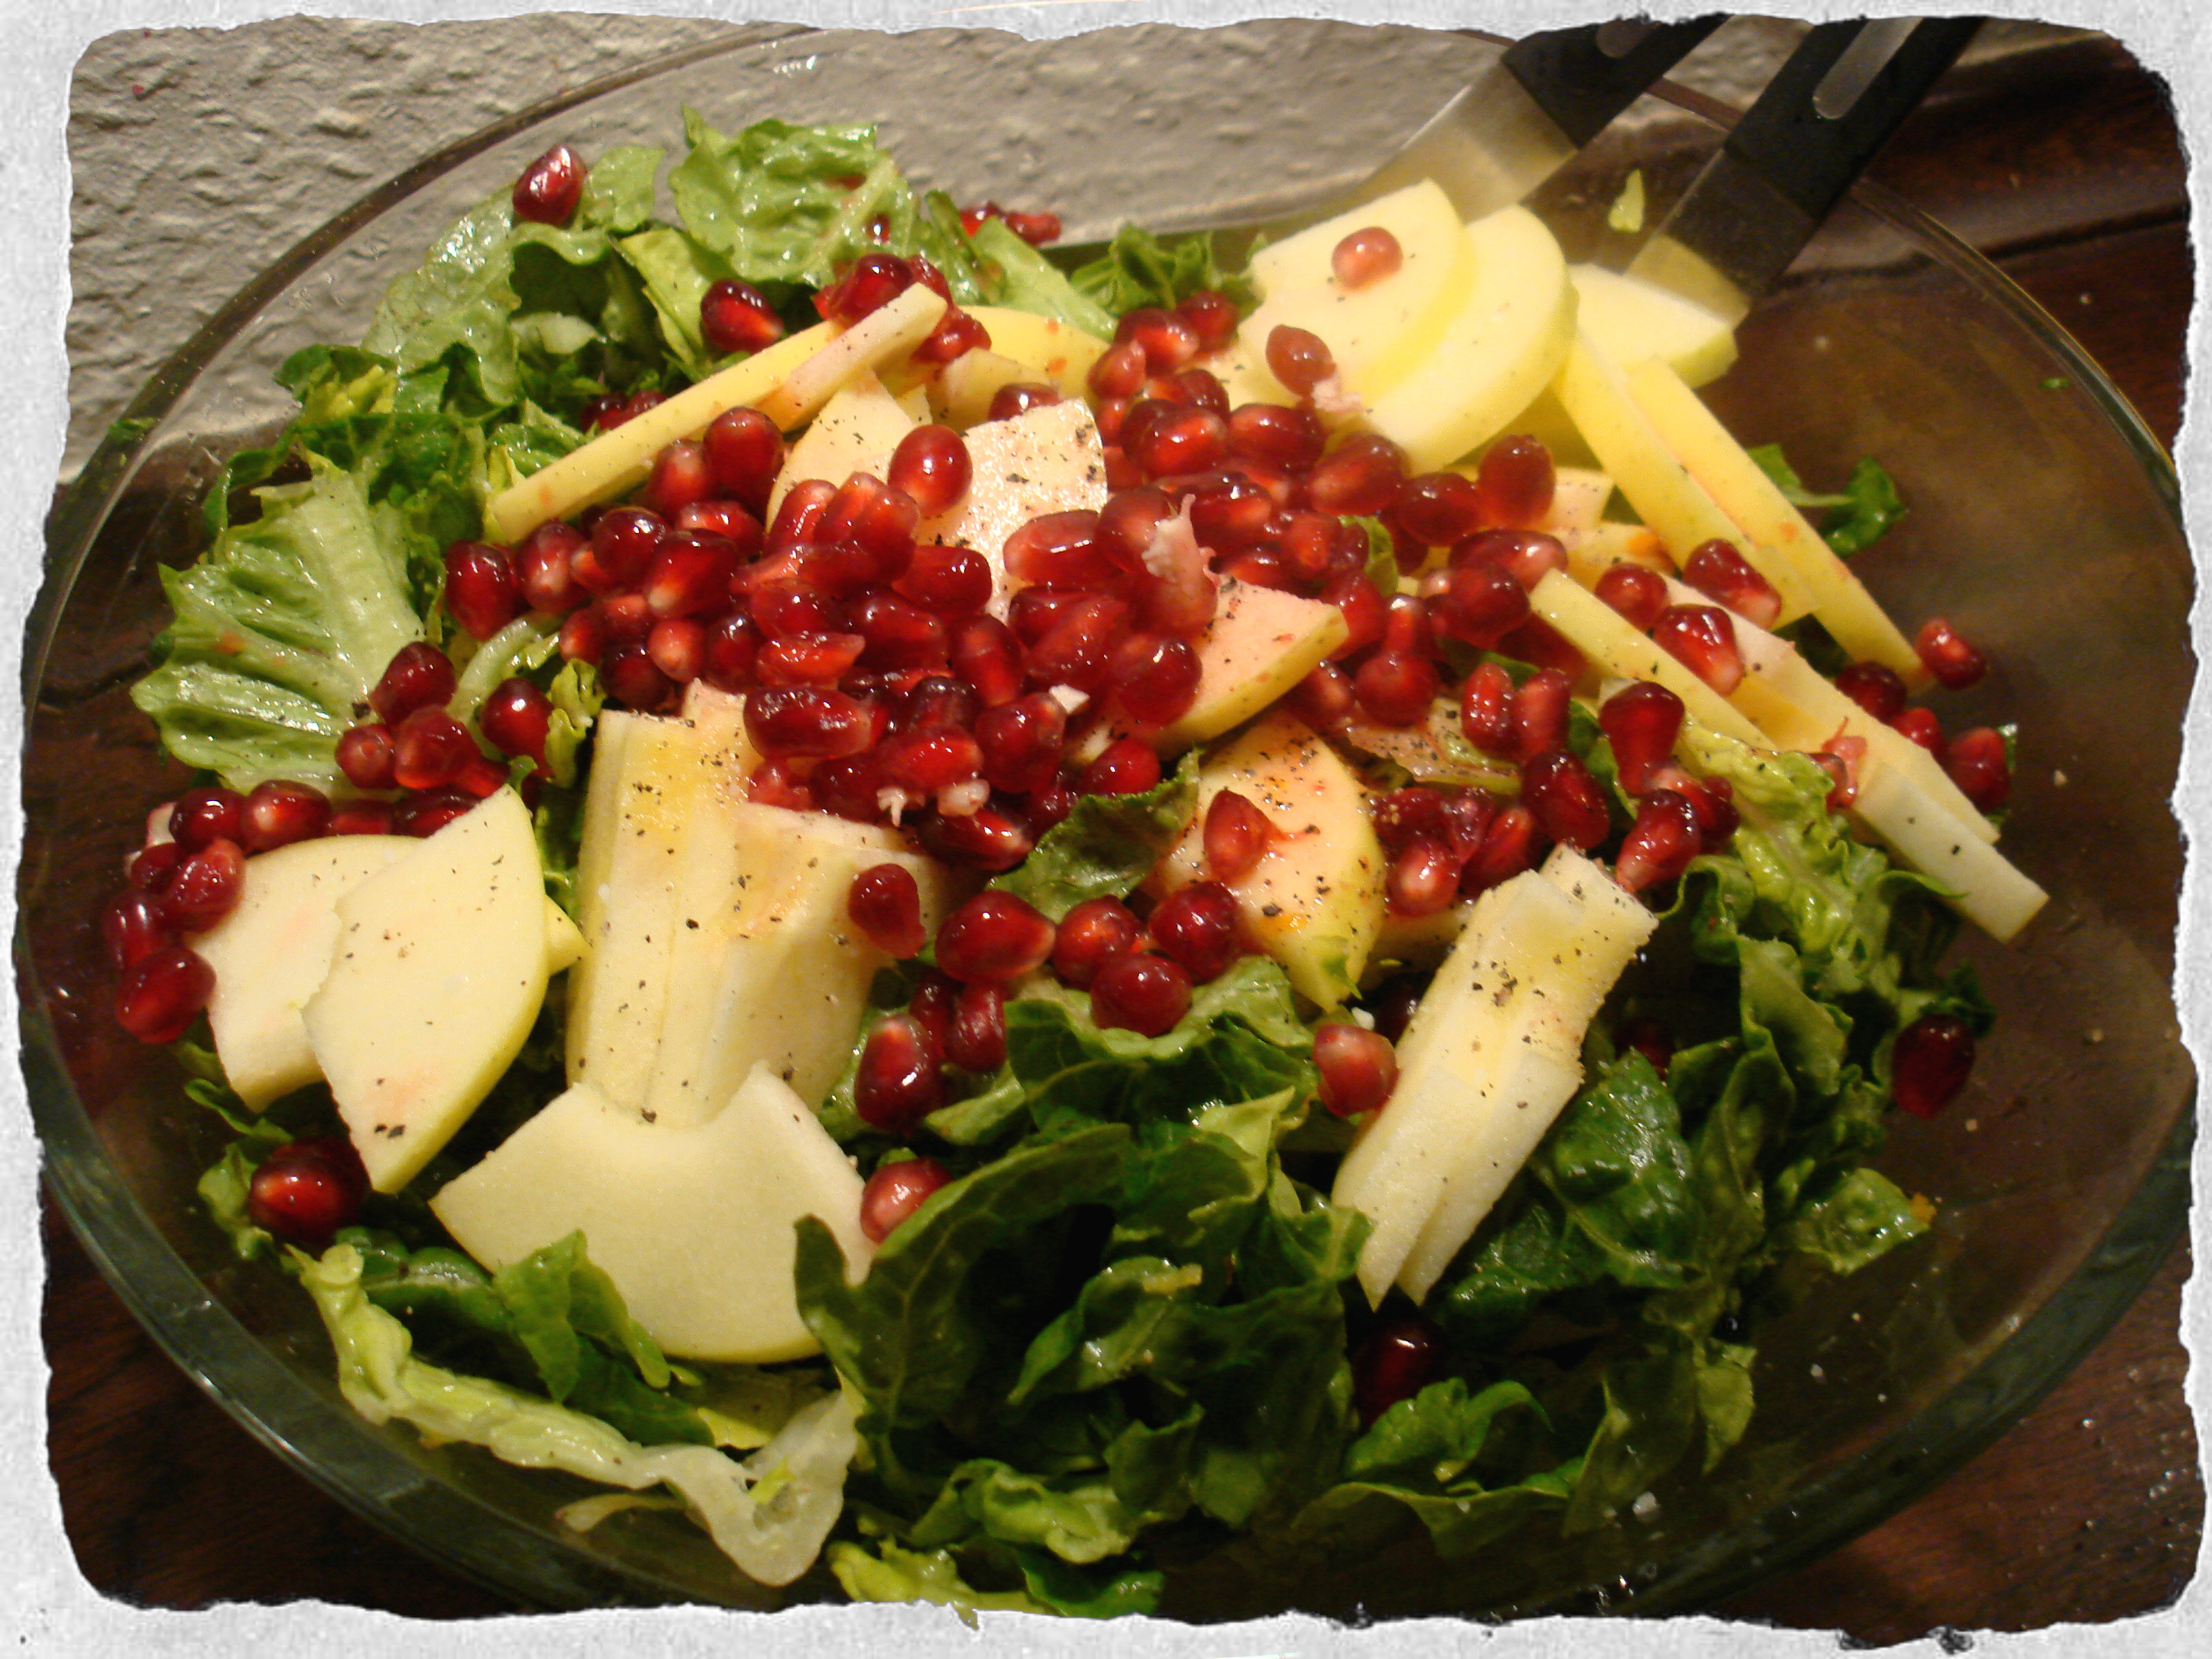 February salad with apples and pomegranate seeds. Citrus dressing